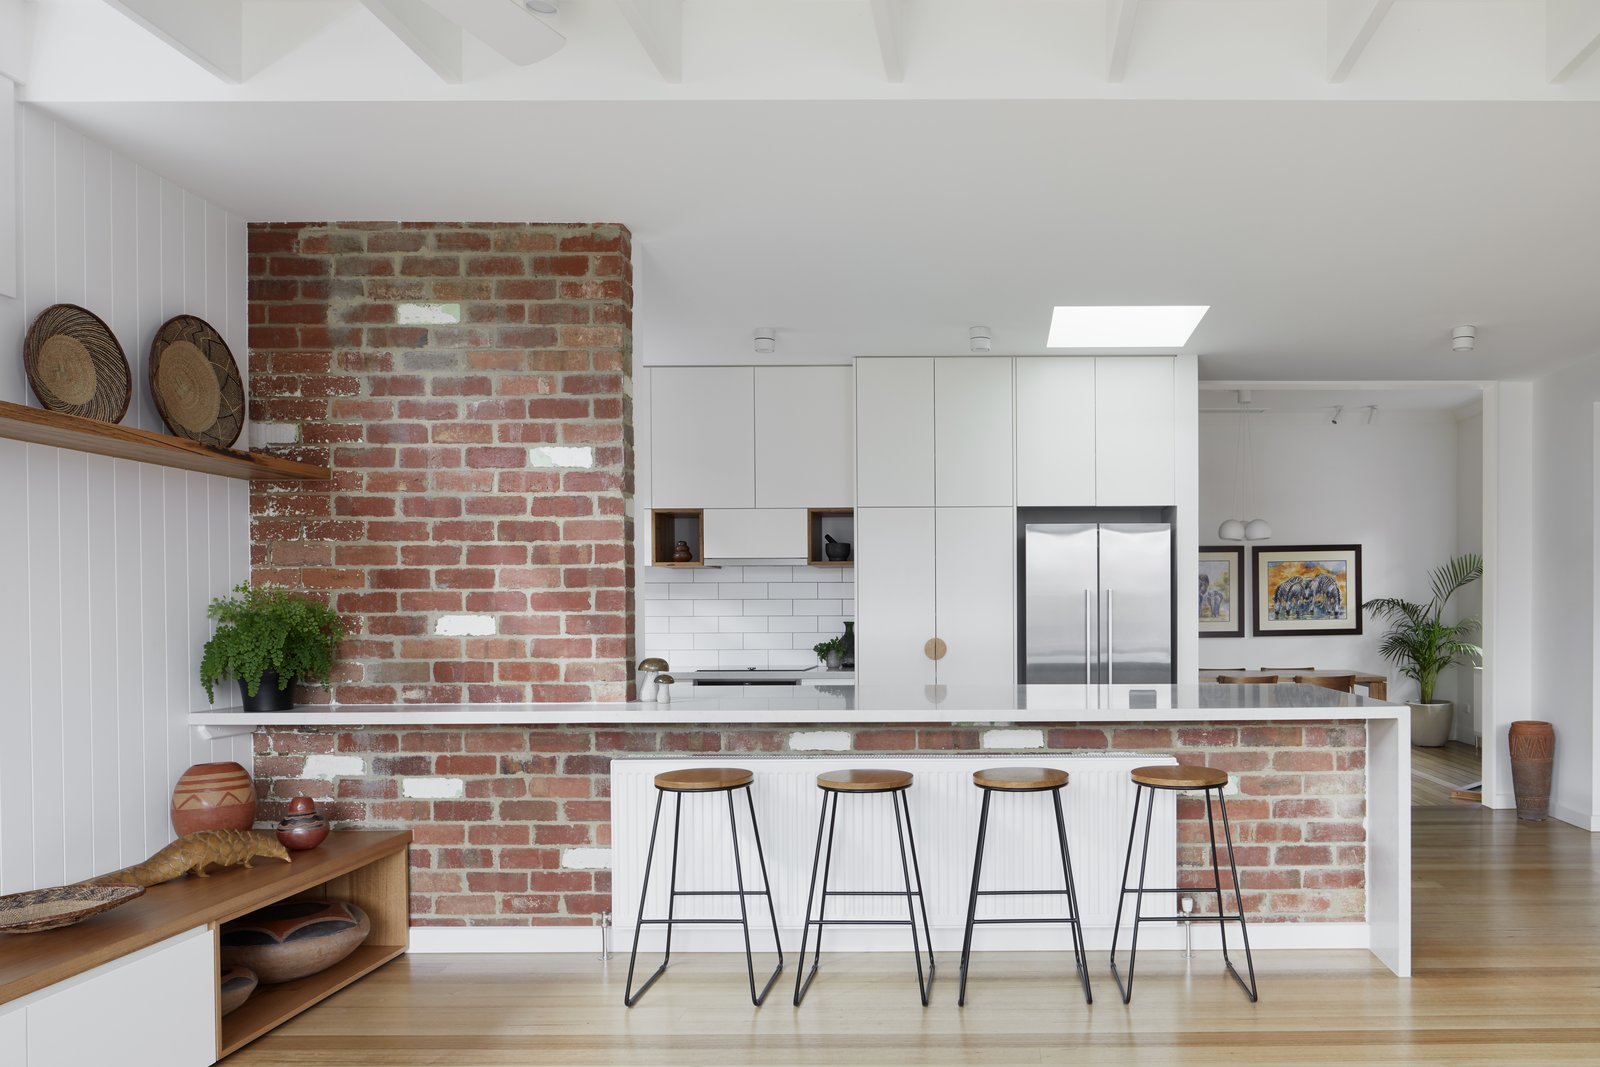 Kitchen, Engineered Quartz Counter, Track Lighting, Cooktops, Refrigerator, Ceramic Tile Backsplashe, Light Hardwood Floor, Subway Tile Backsplashe, and White Cabinet Existing brick wall is reinstated with recycled brick and opened to form connection between kitchen and  living   Preston 1